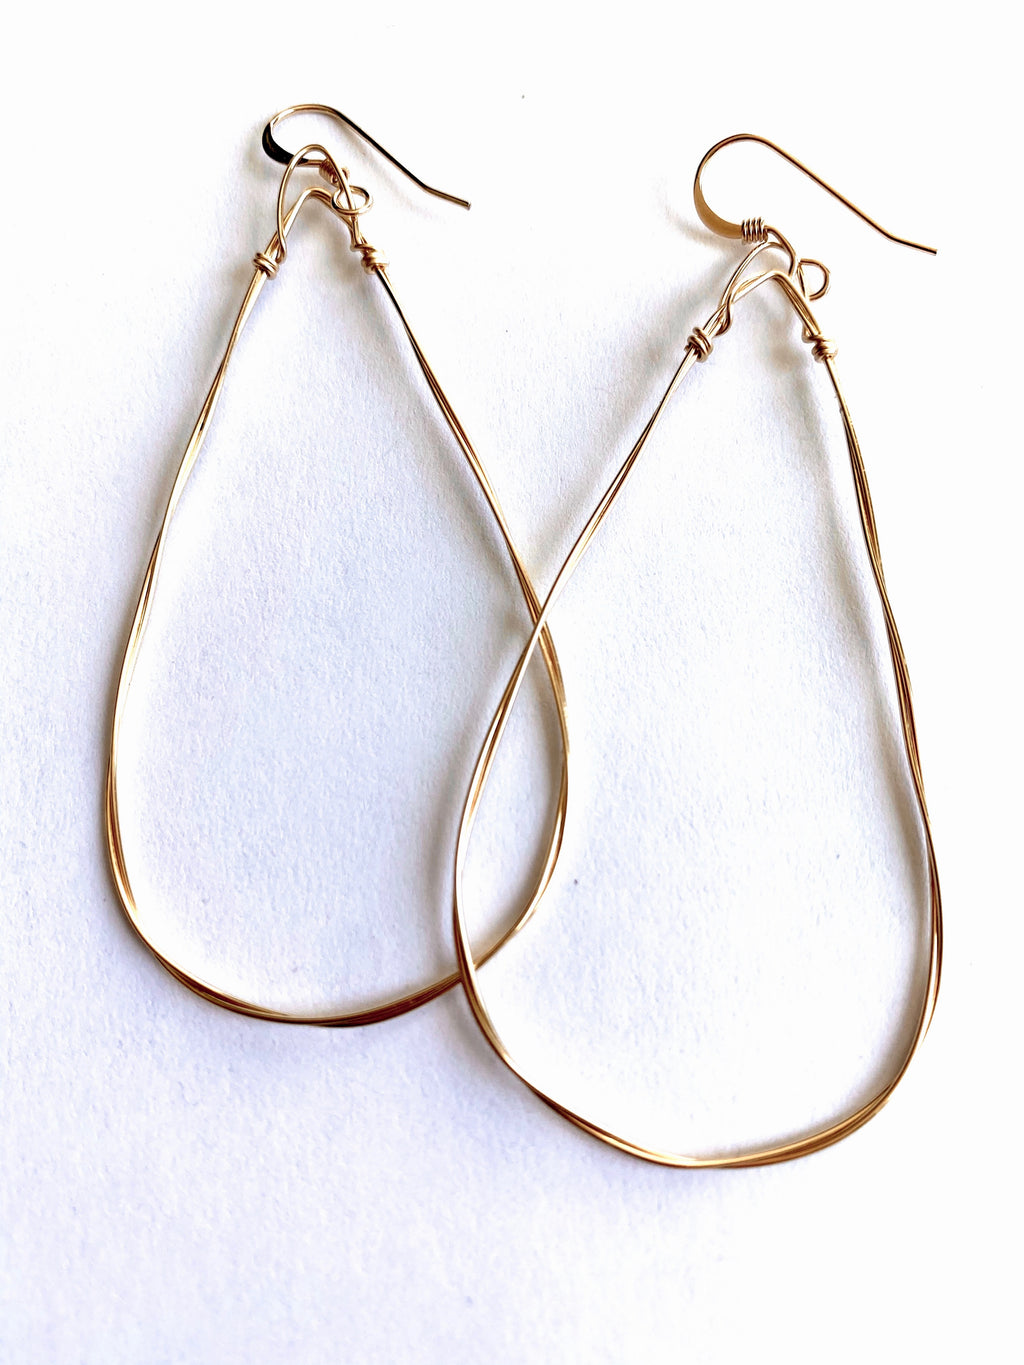 Emma Rose Small Triangle Hoops in 14K Gold Filled Wire